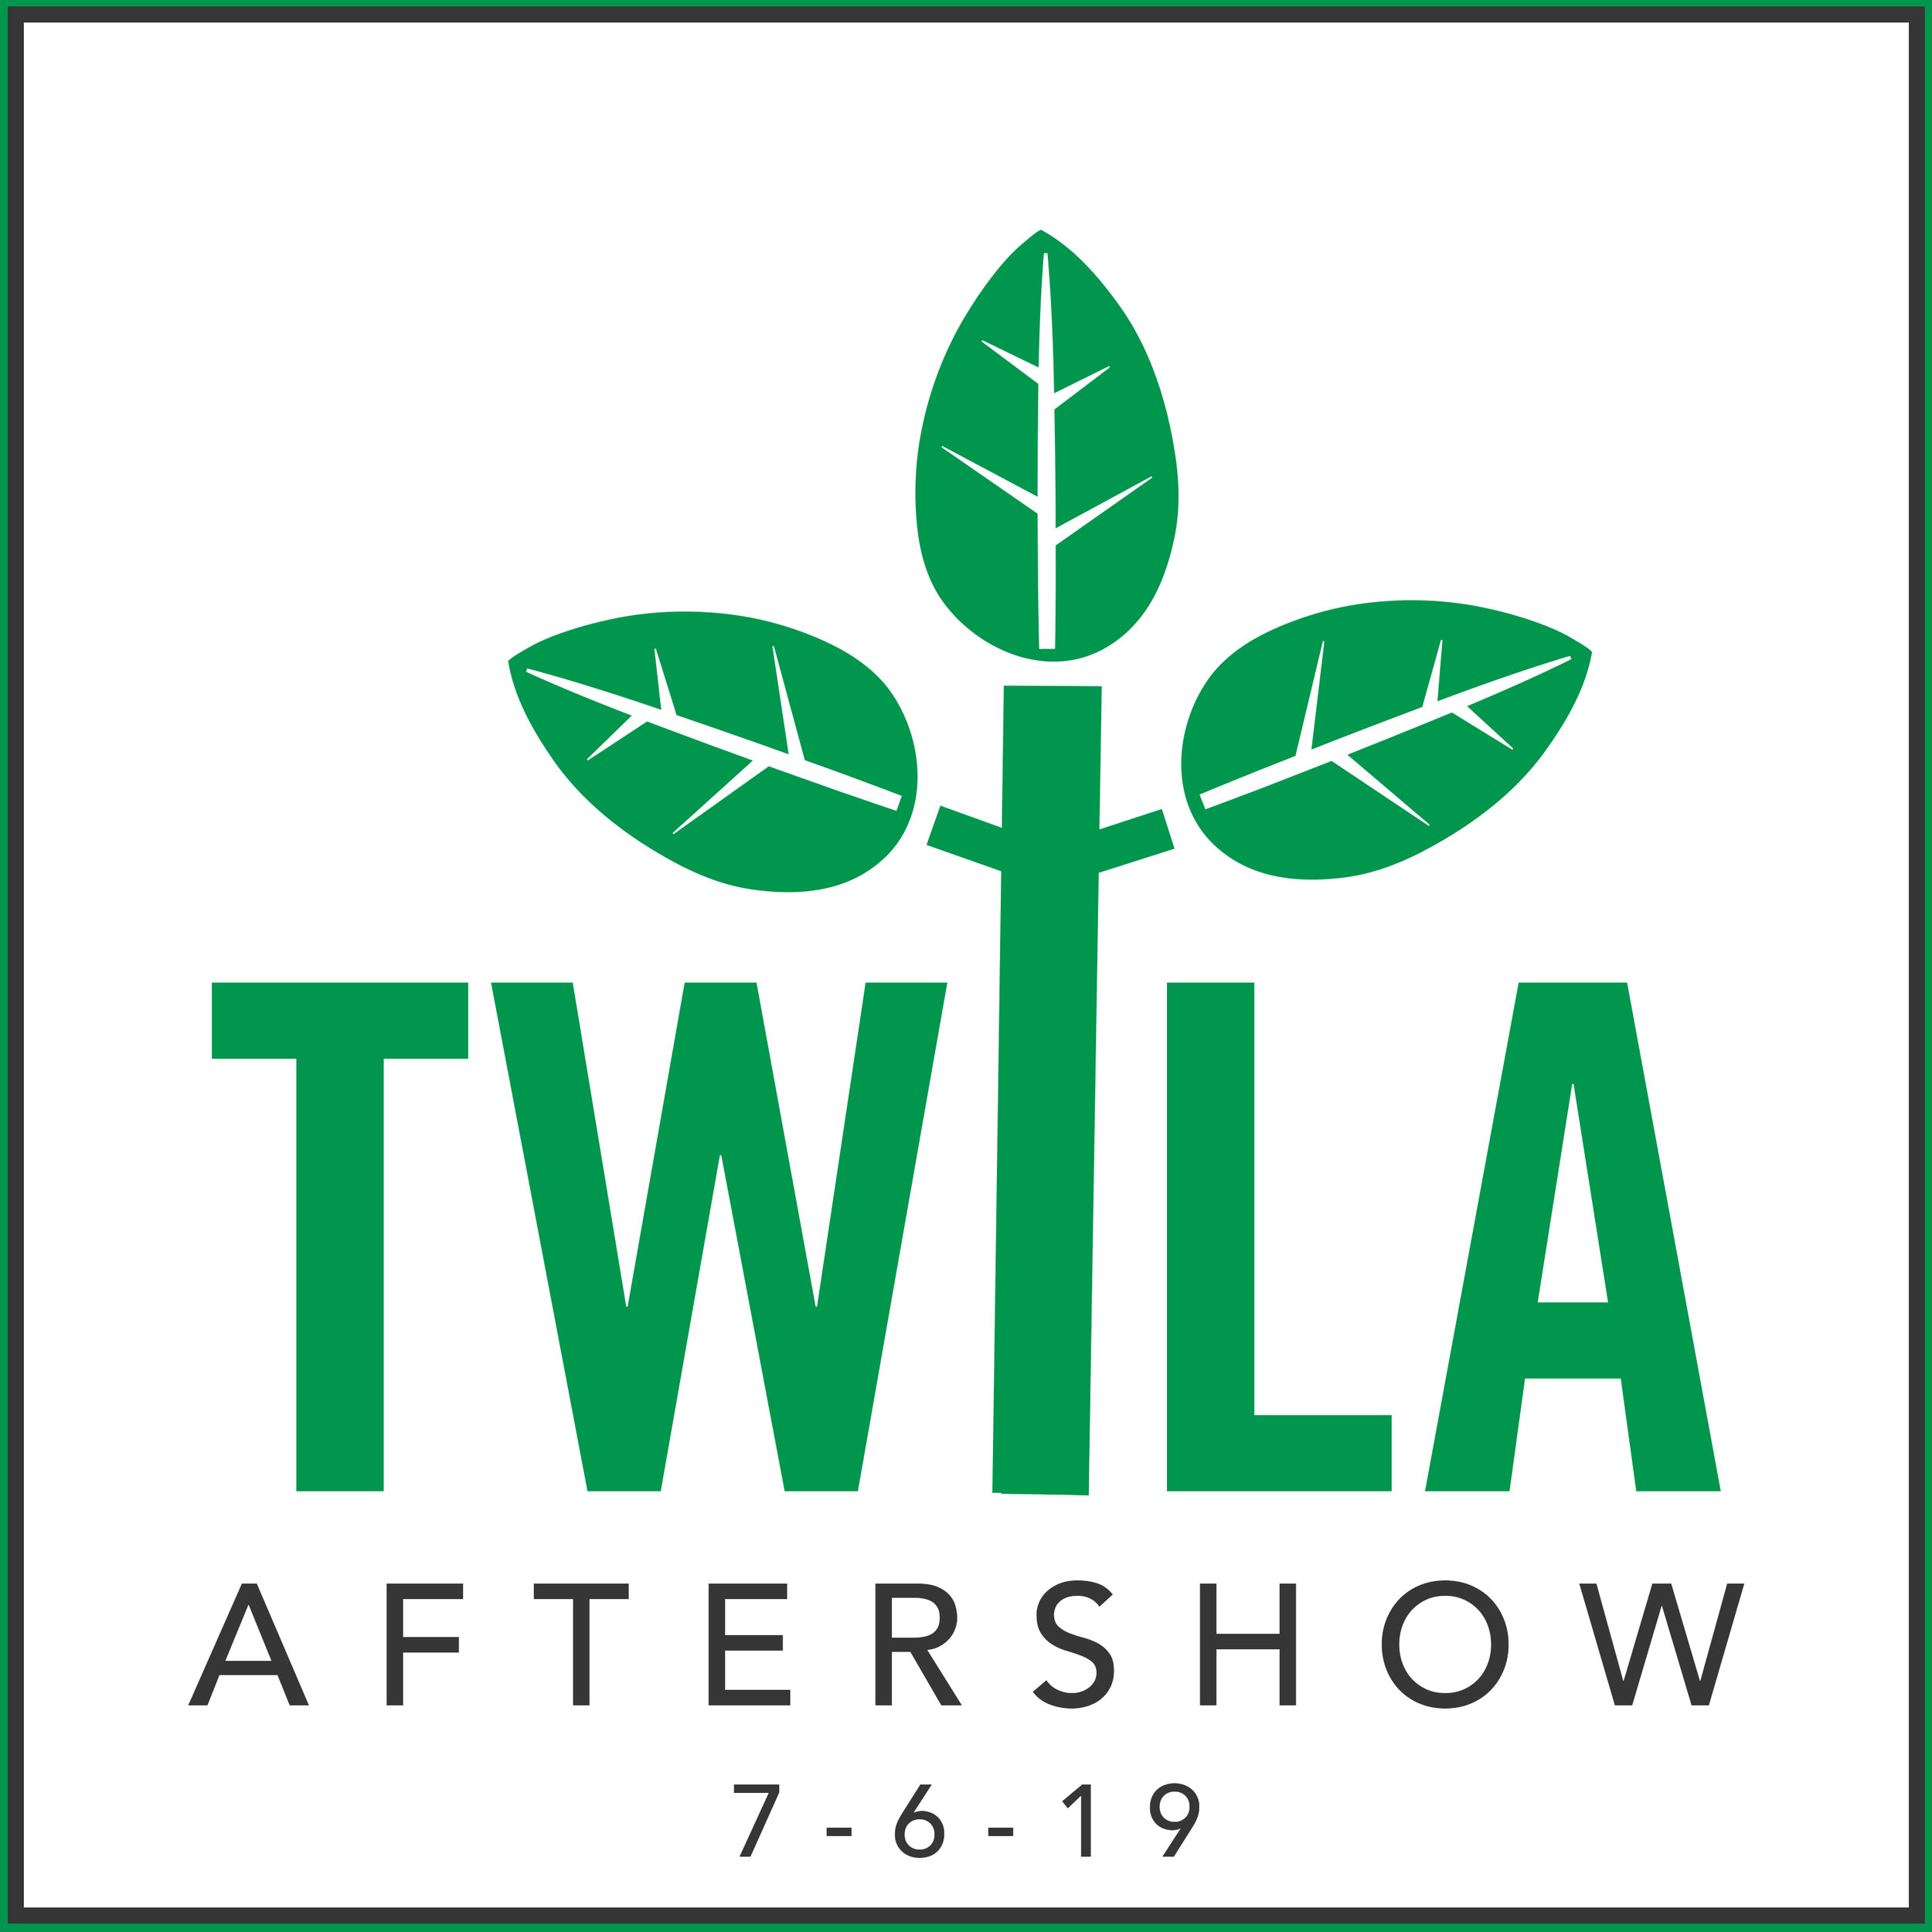 TWILA-After-Show-TN---7-6-19.jpg